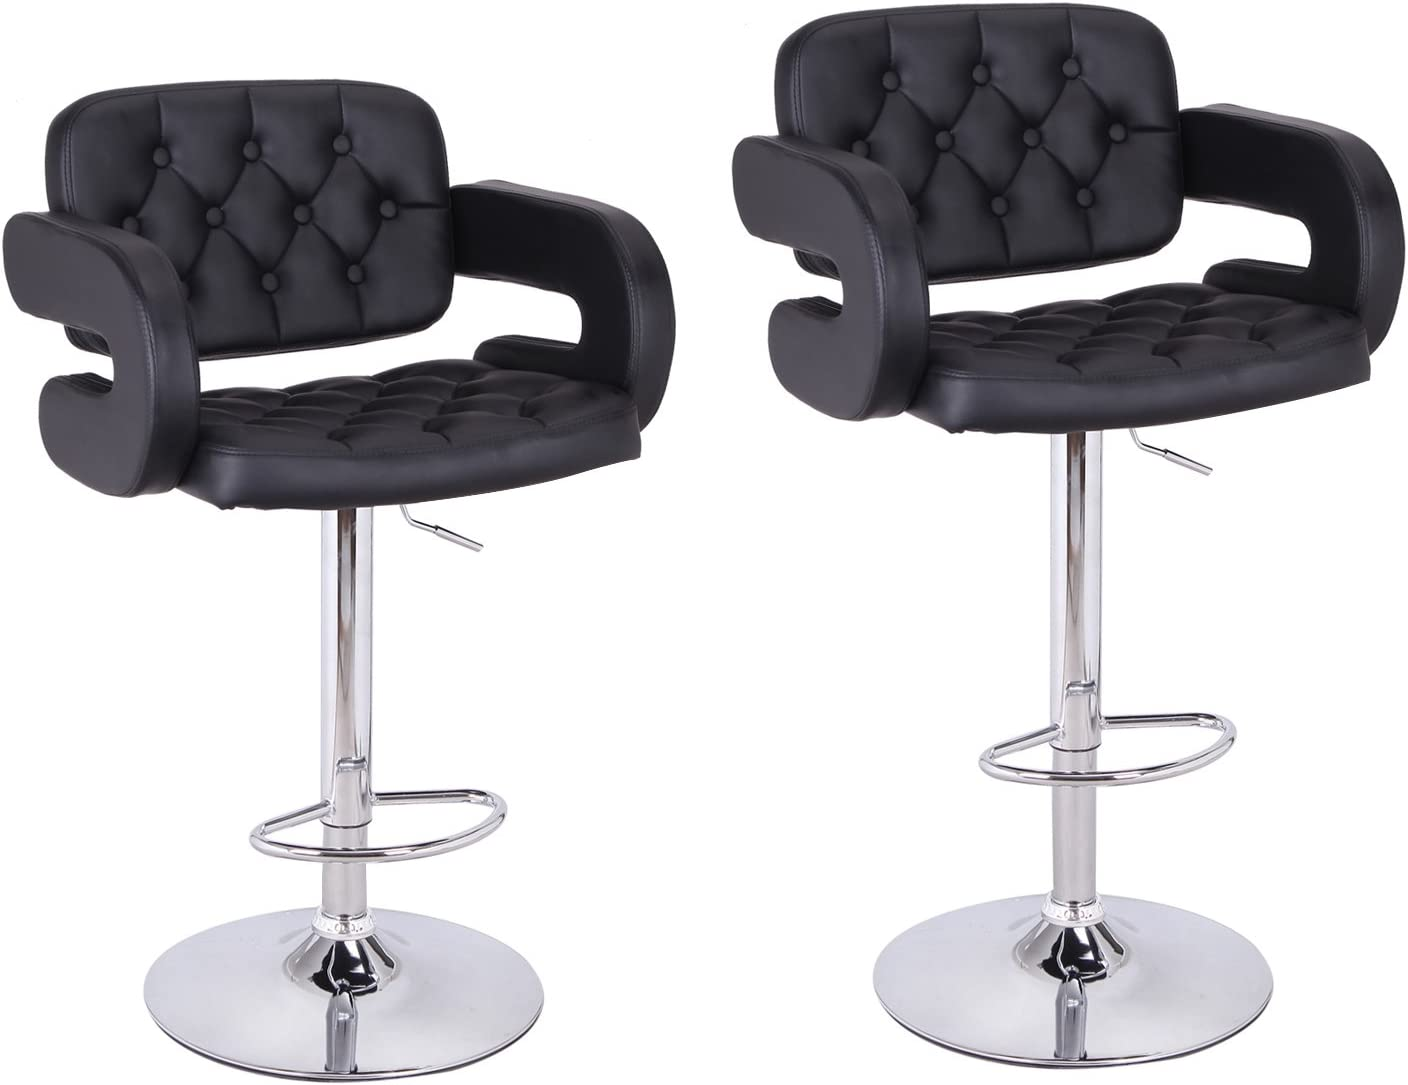 ELEGAN Arm-Rest Leatherette Adjustable Low Cut Out Back Barstool Chair Set of 2